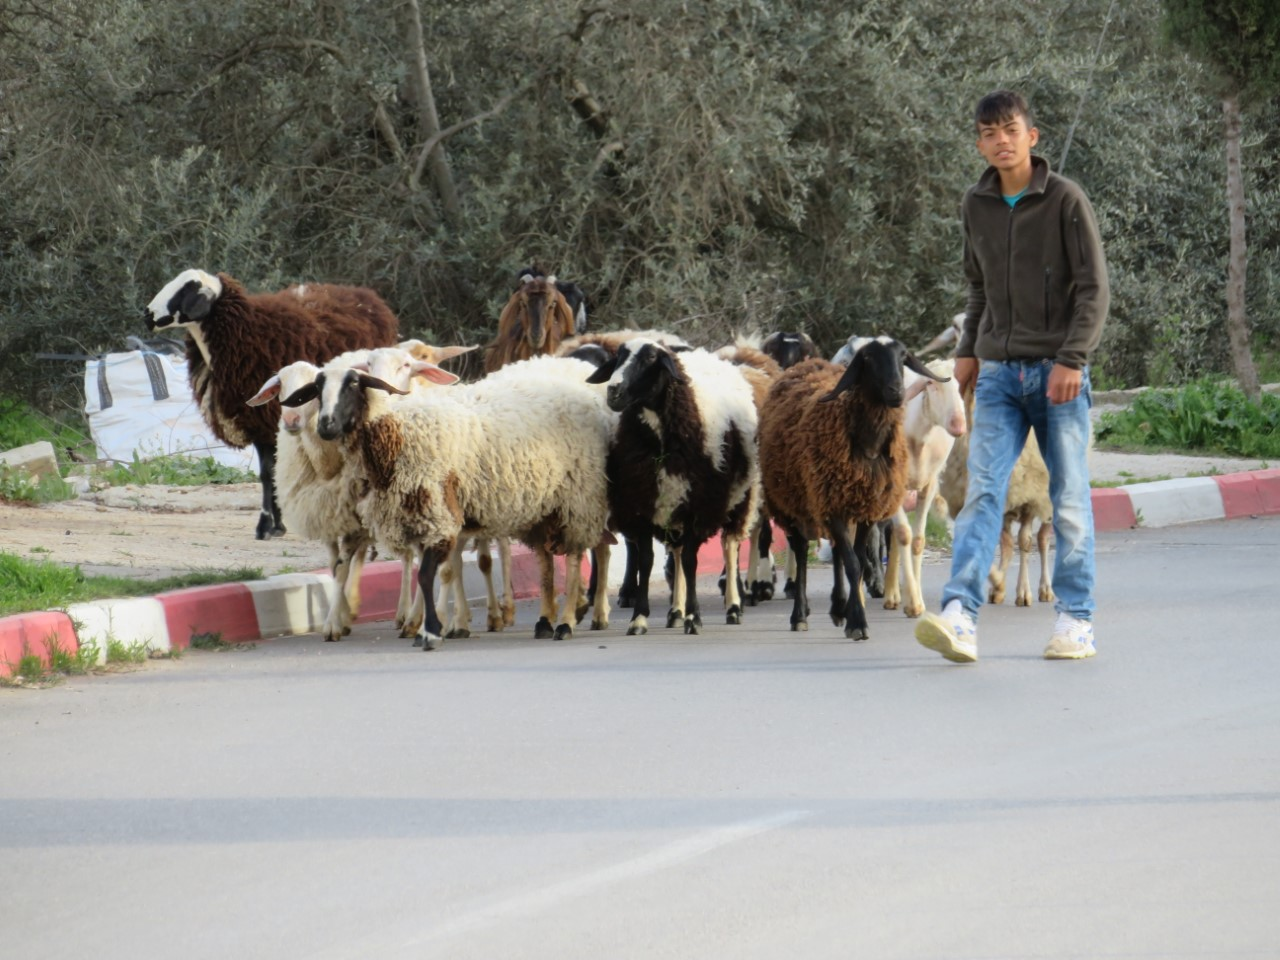 A Palestinian Shepherd boy with his sheep and goats, all that's visible in Bethlehem's empty streets.